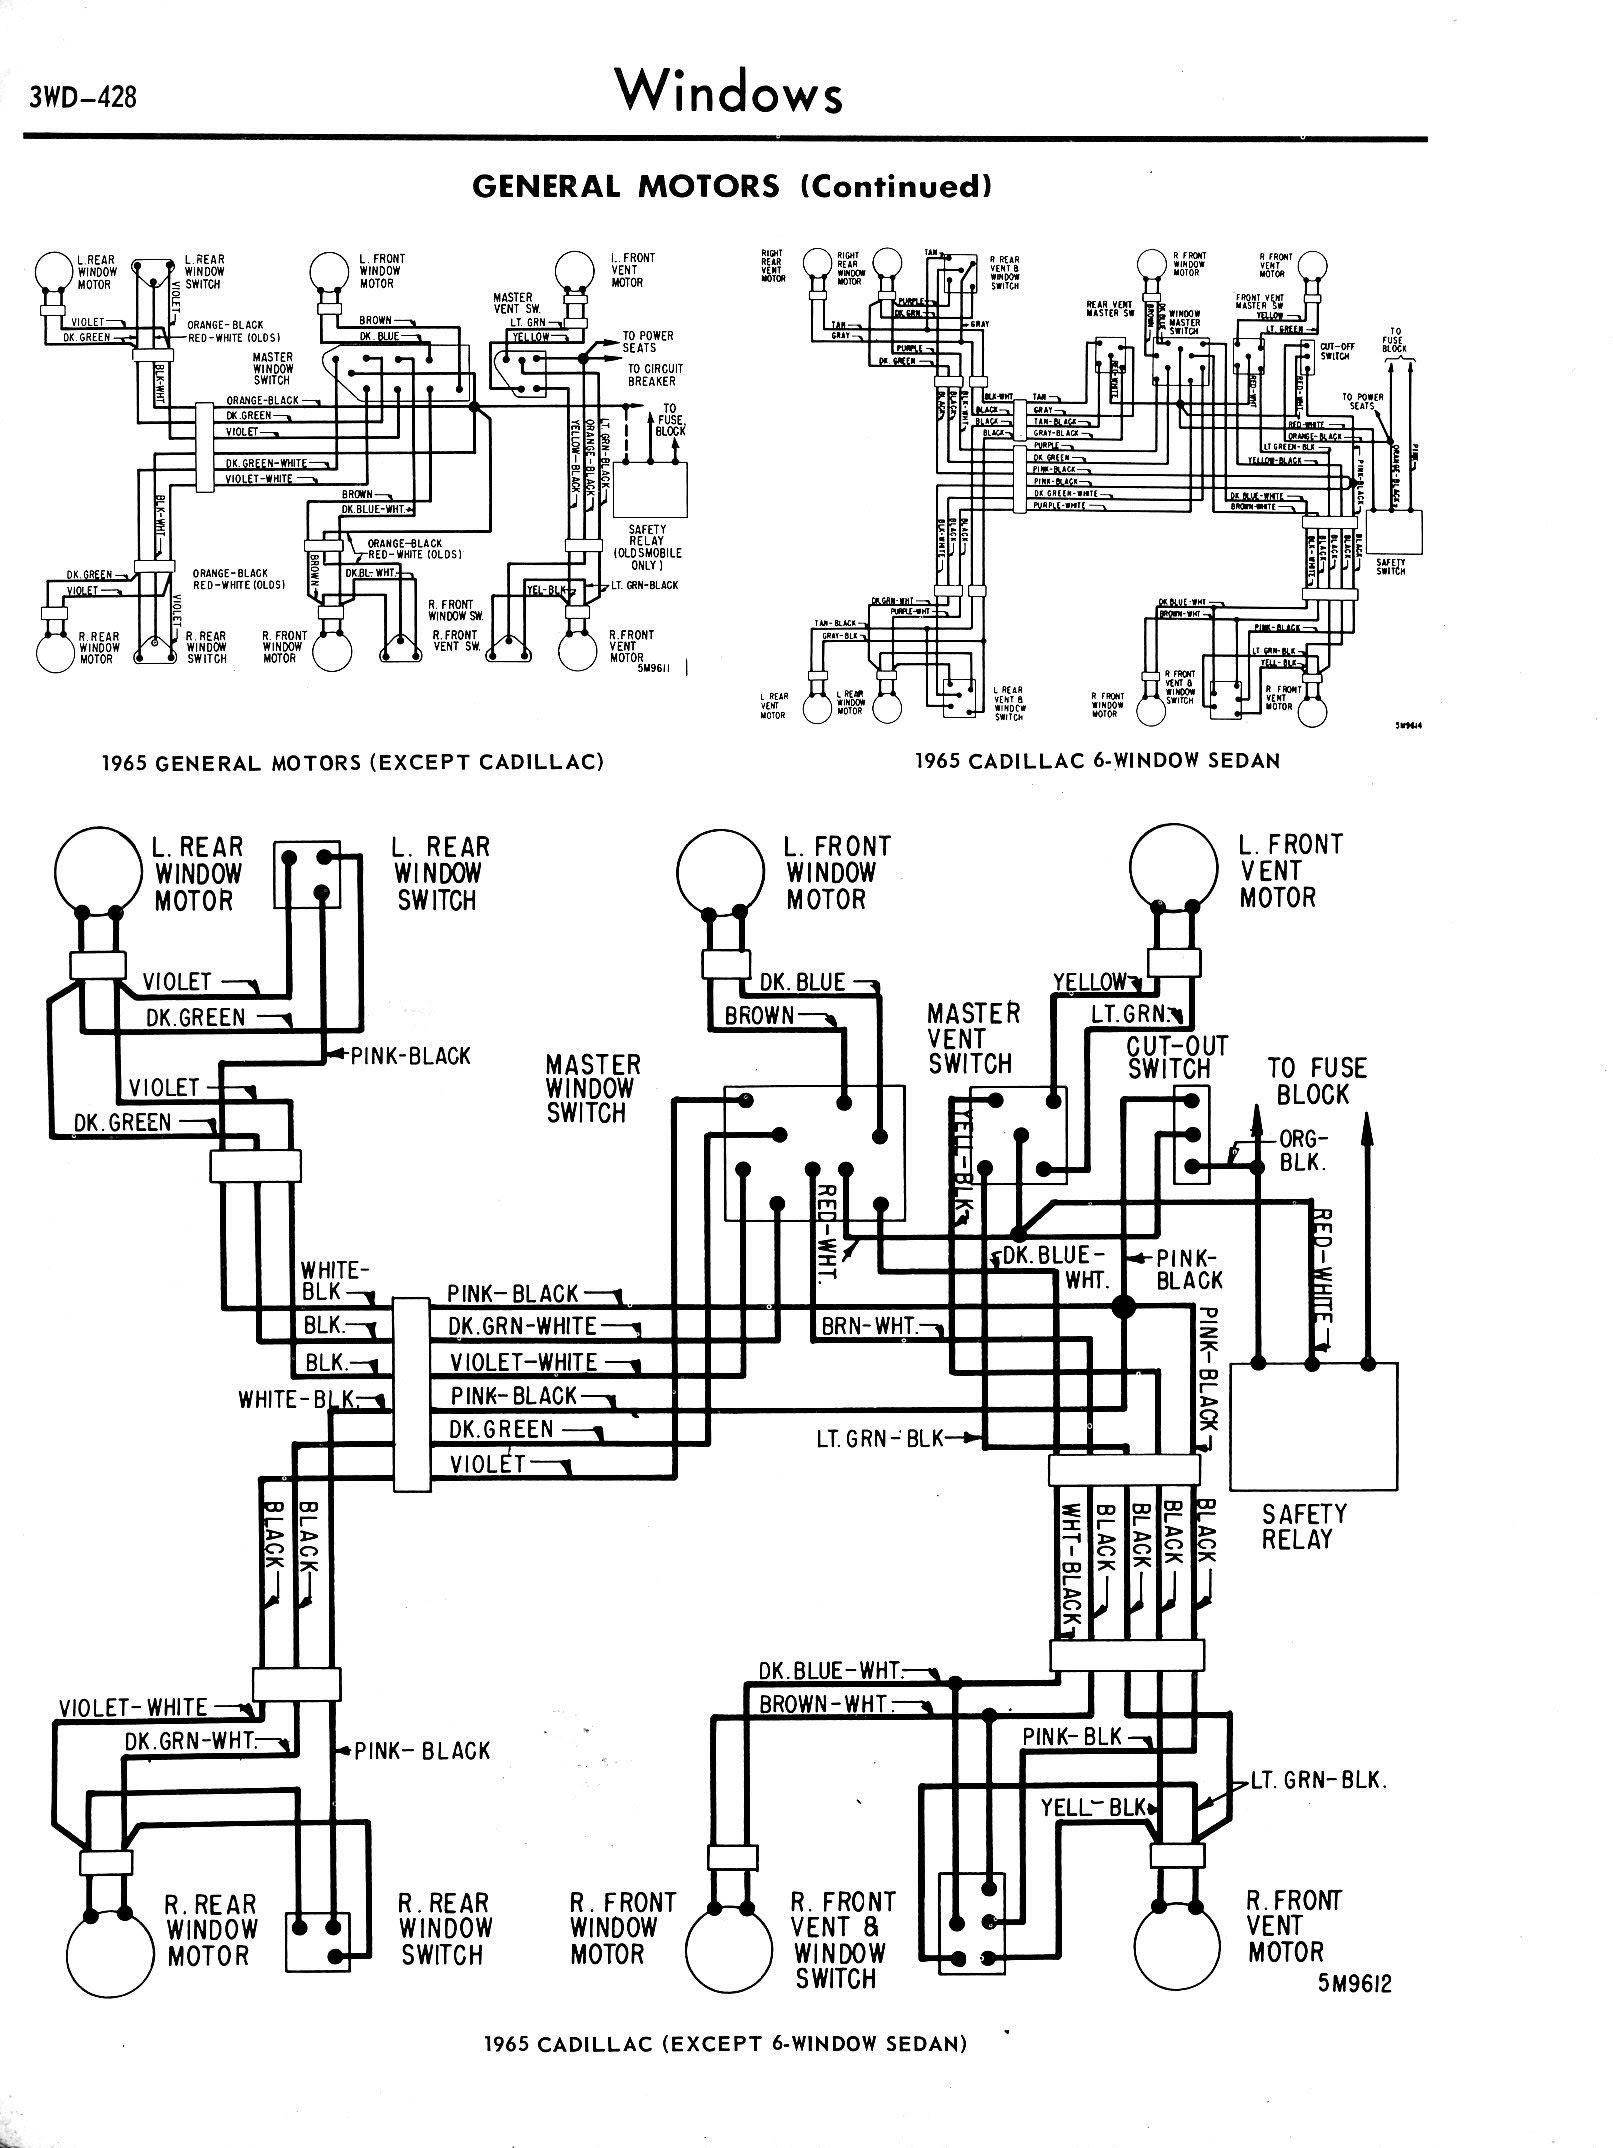 1969 Cadillac Fuse Box Diagram Wiring Diagram Under1 Under1 Bujinkan It